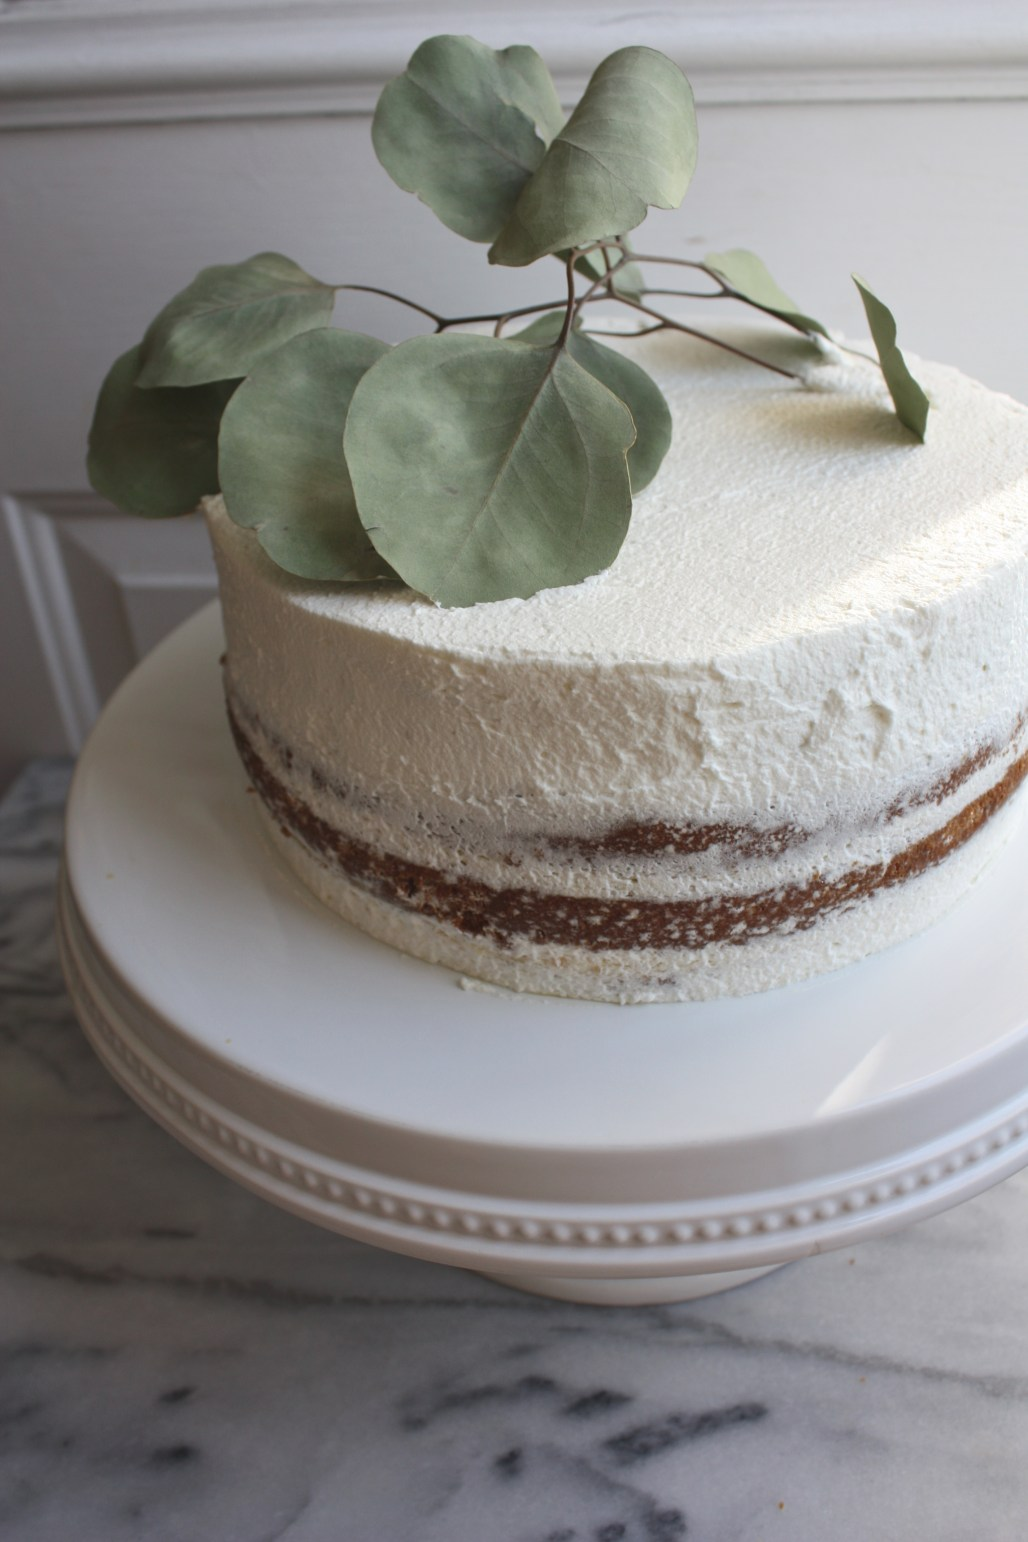 Classic Vanilla + Passion Fruit Curd Whipped Cream Layered Cake